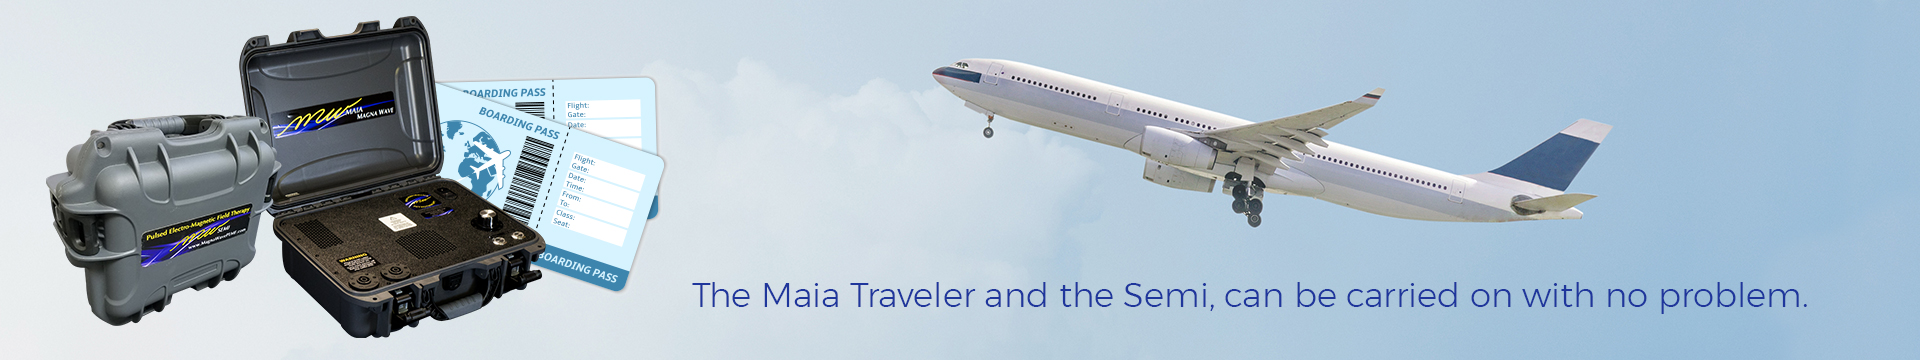 The Maia Traveler and the Semi, can be carried on with no problem.